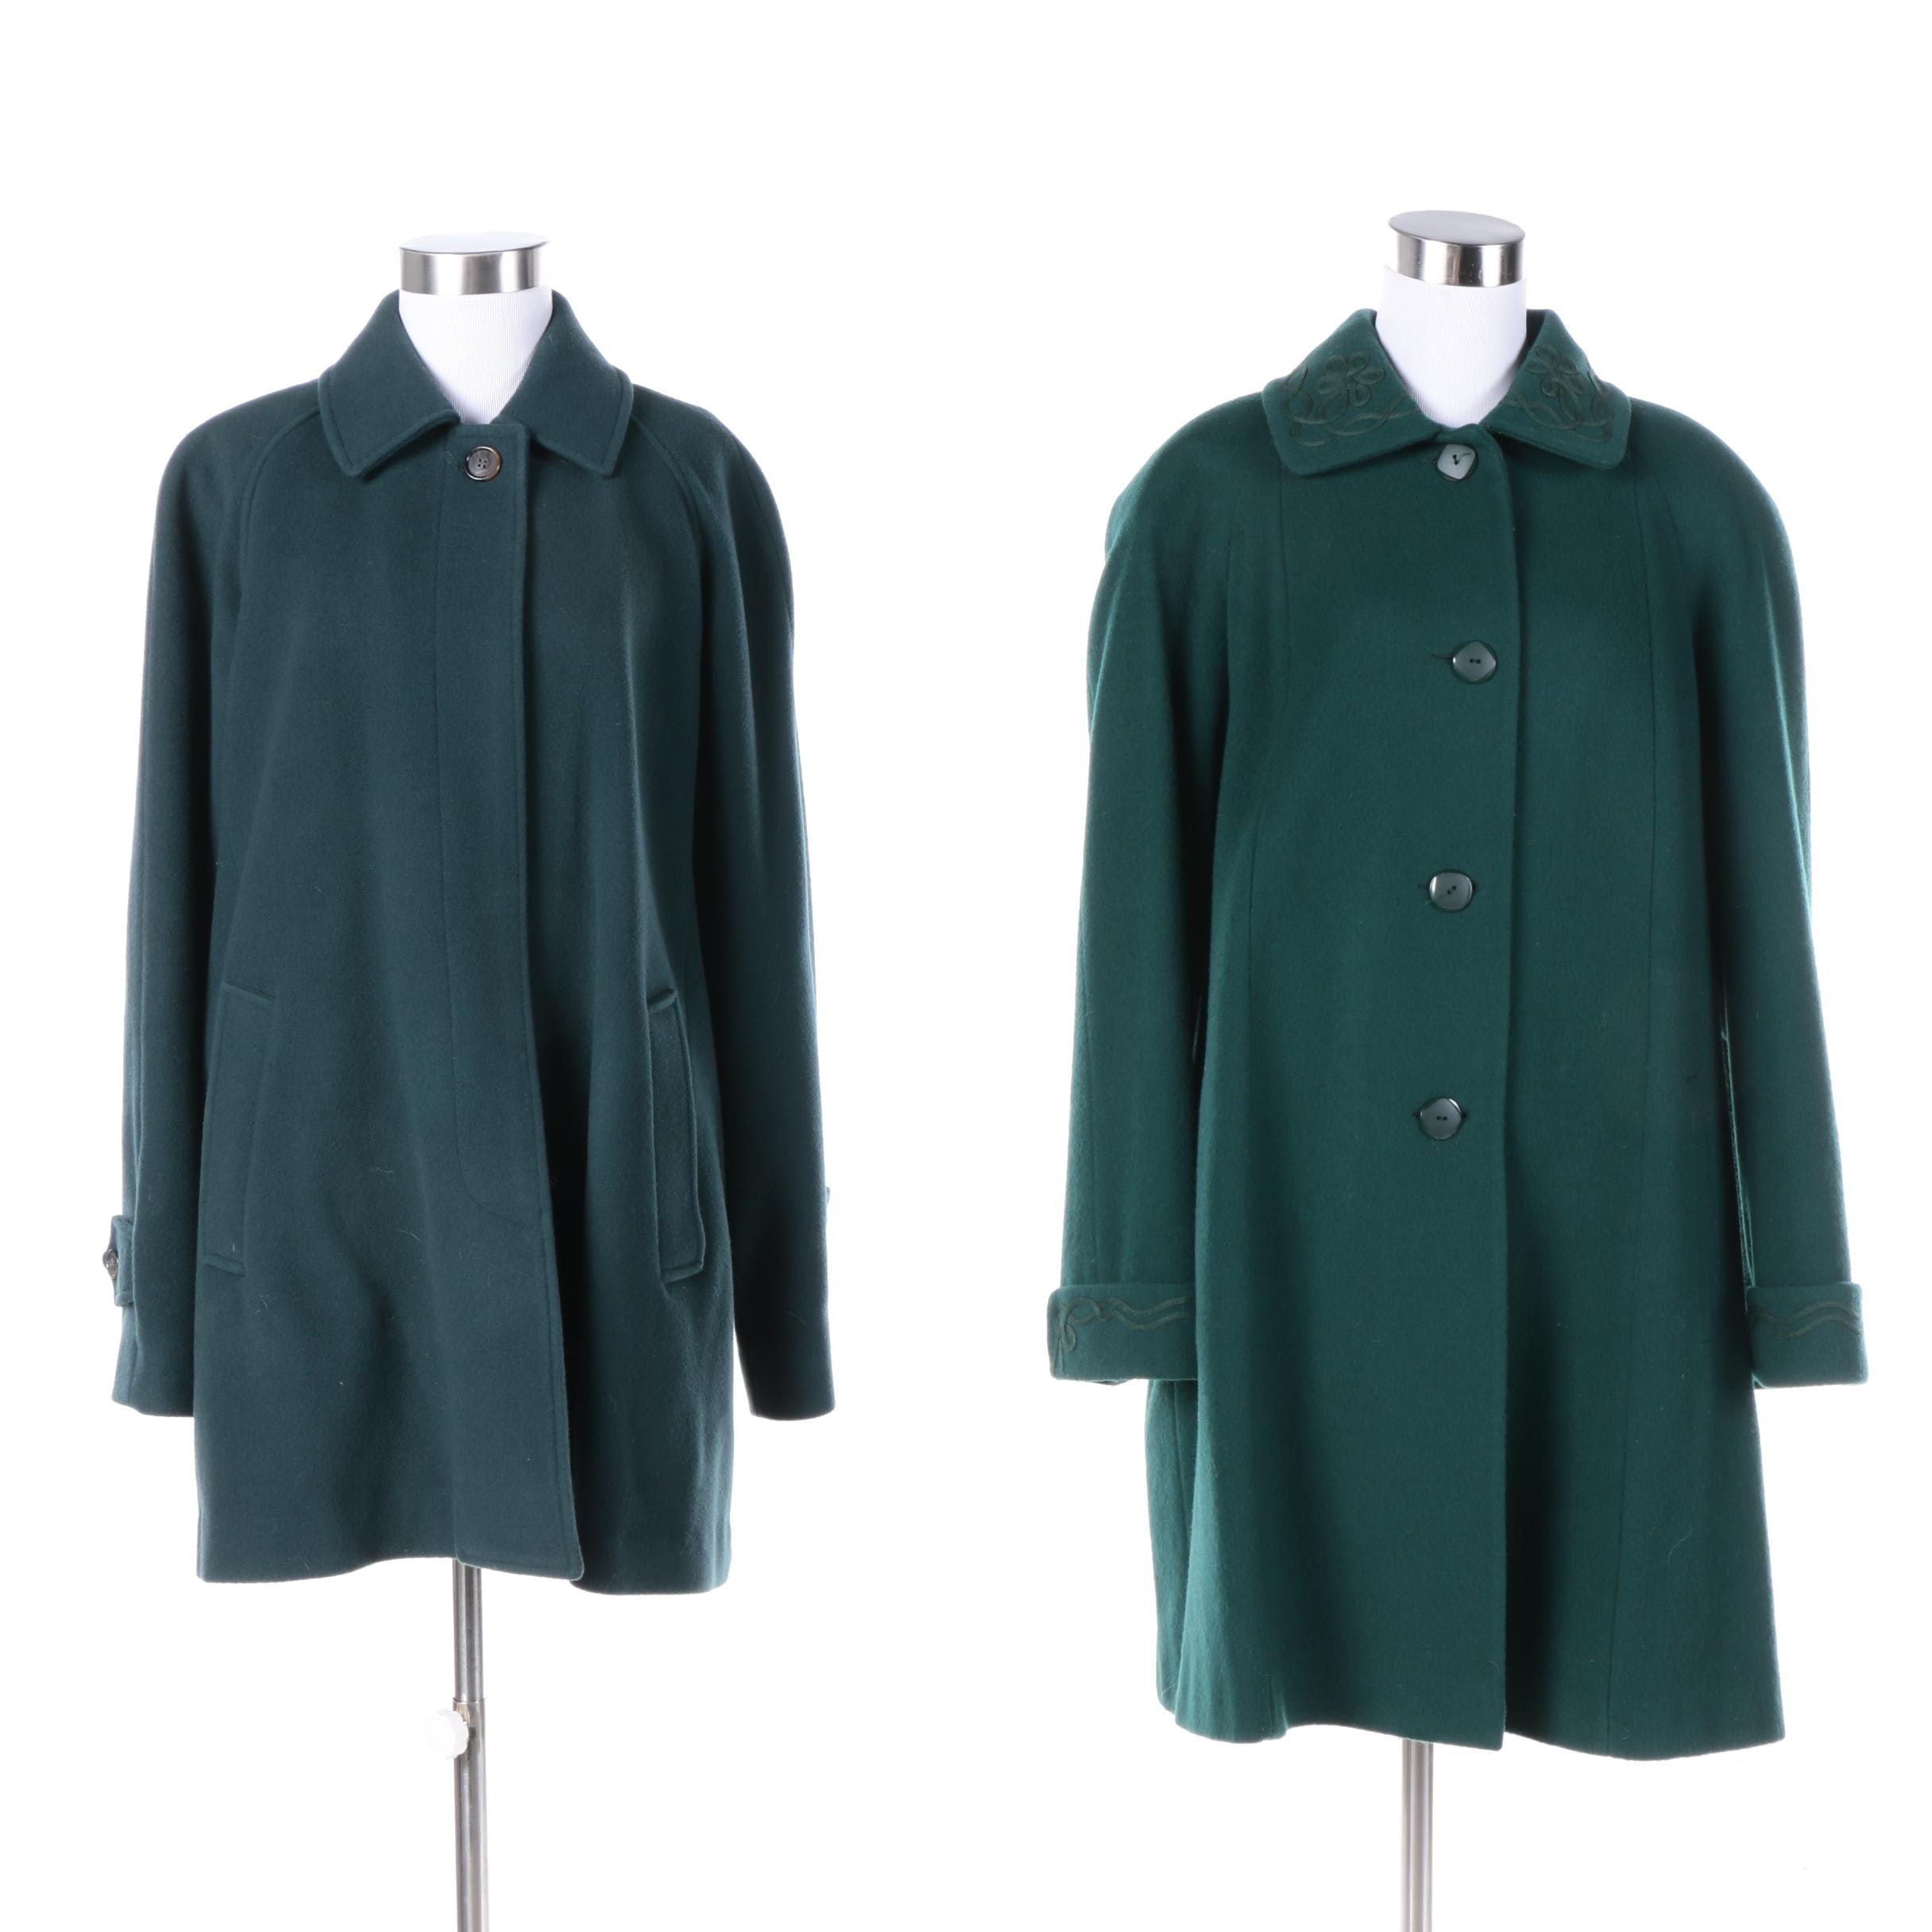 Women's Vintage Green Wool Blend Coats Including London Fog and Alorna